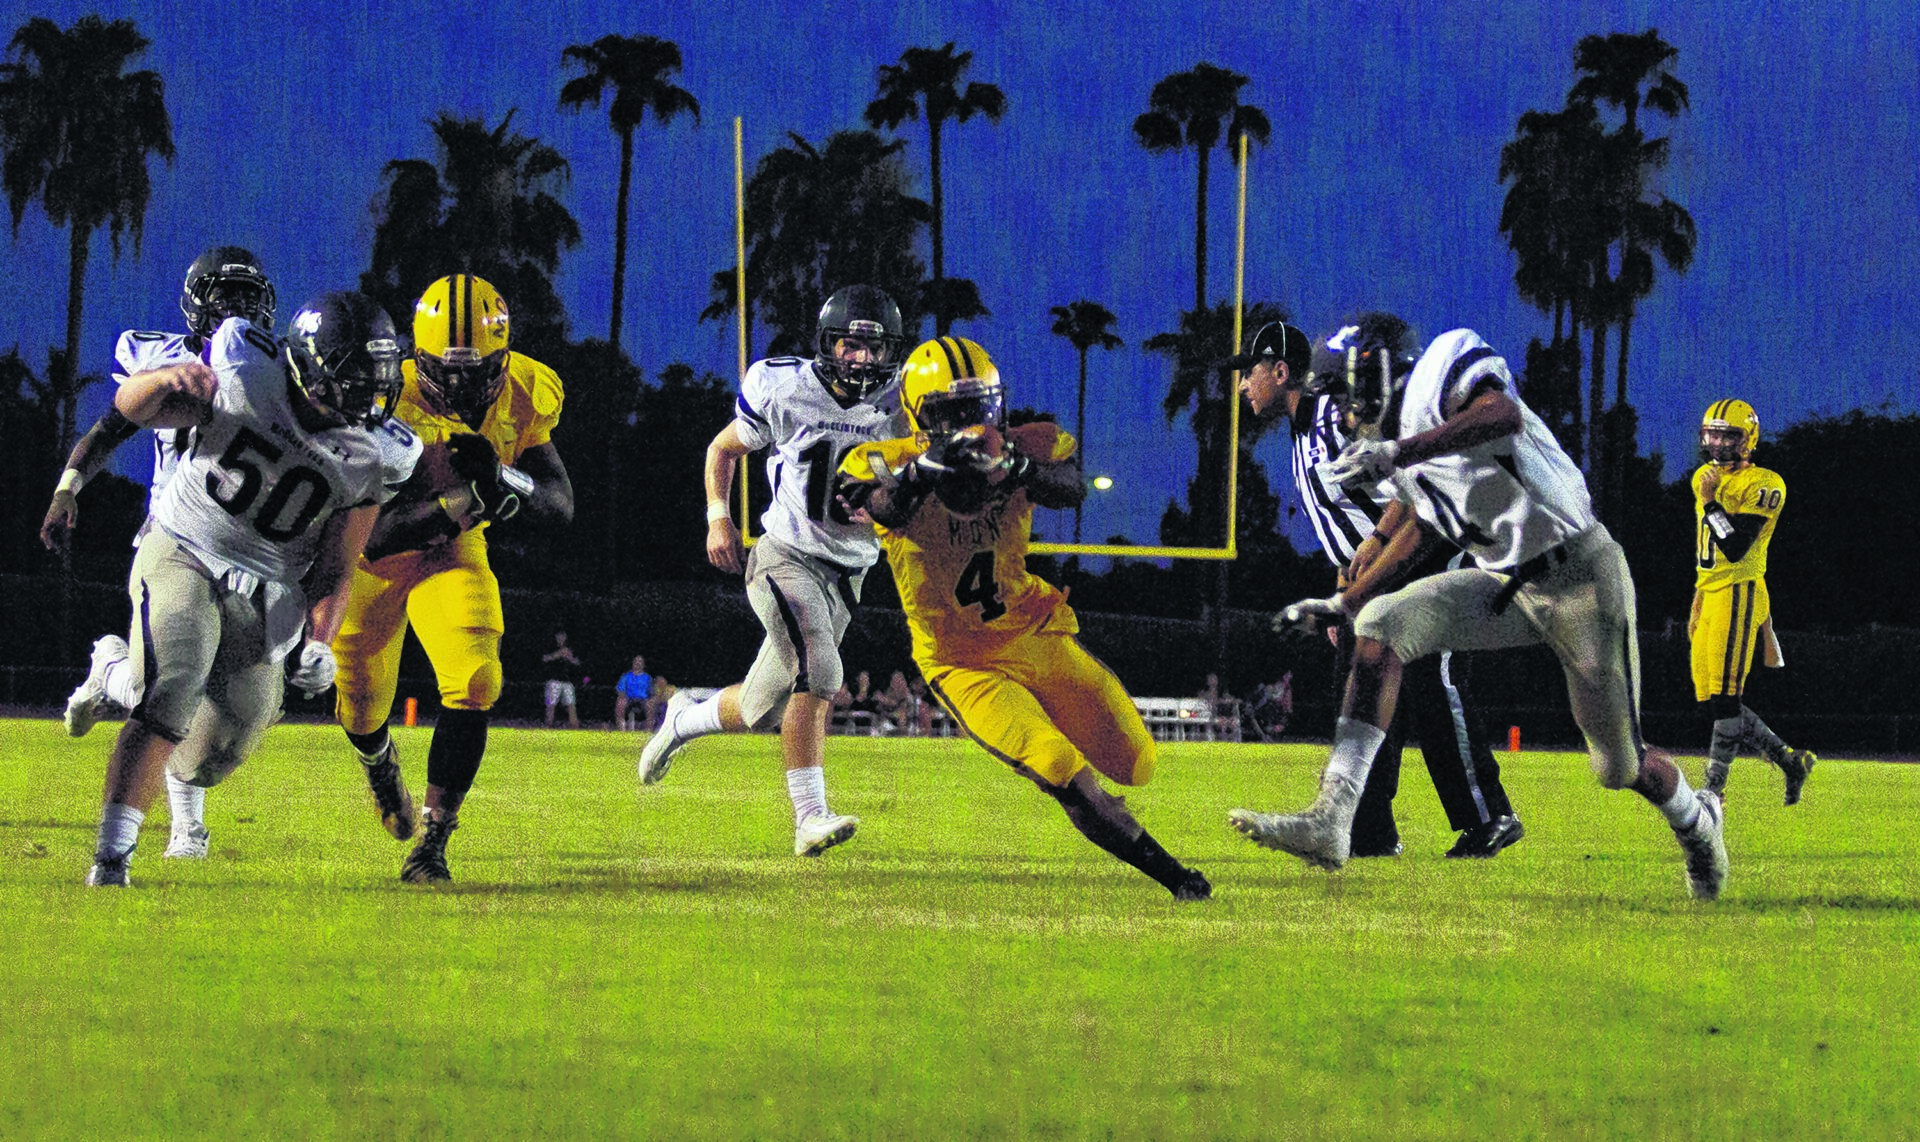 Marcos de Niza running back Shaun Richards (4) dives for a touchdown during a football game against McClintock on Friday, Aug. 28, 2015. Marcos de Niza takes a 49-7 win over McClintock.